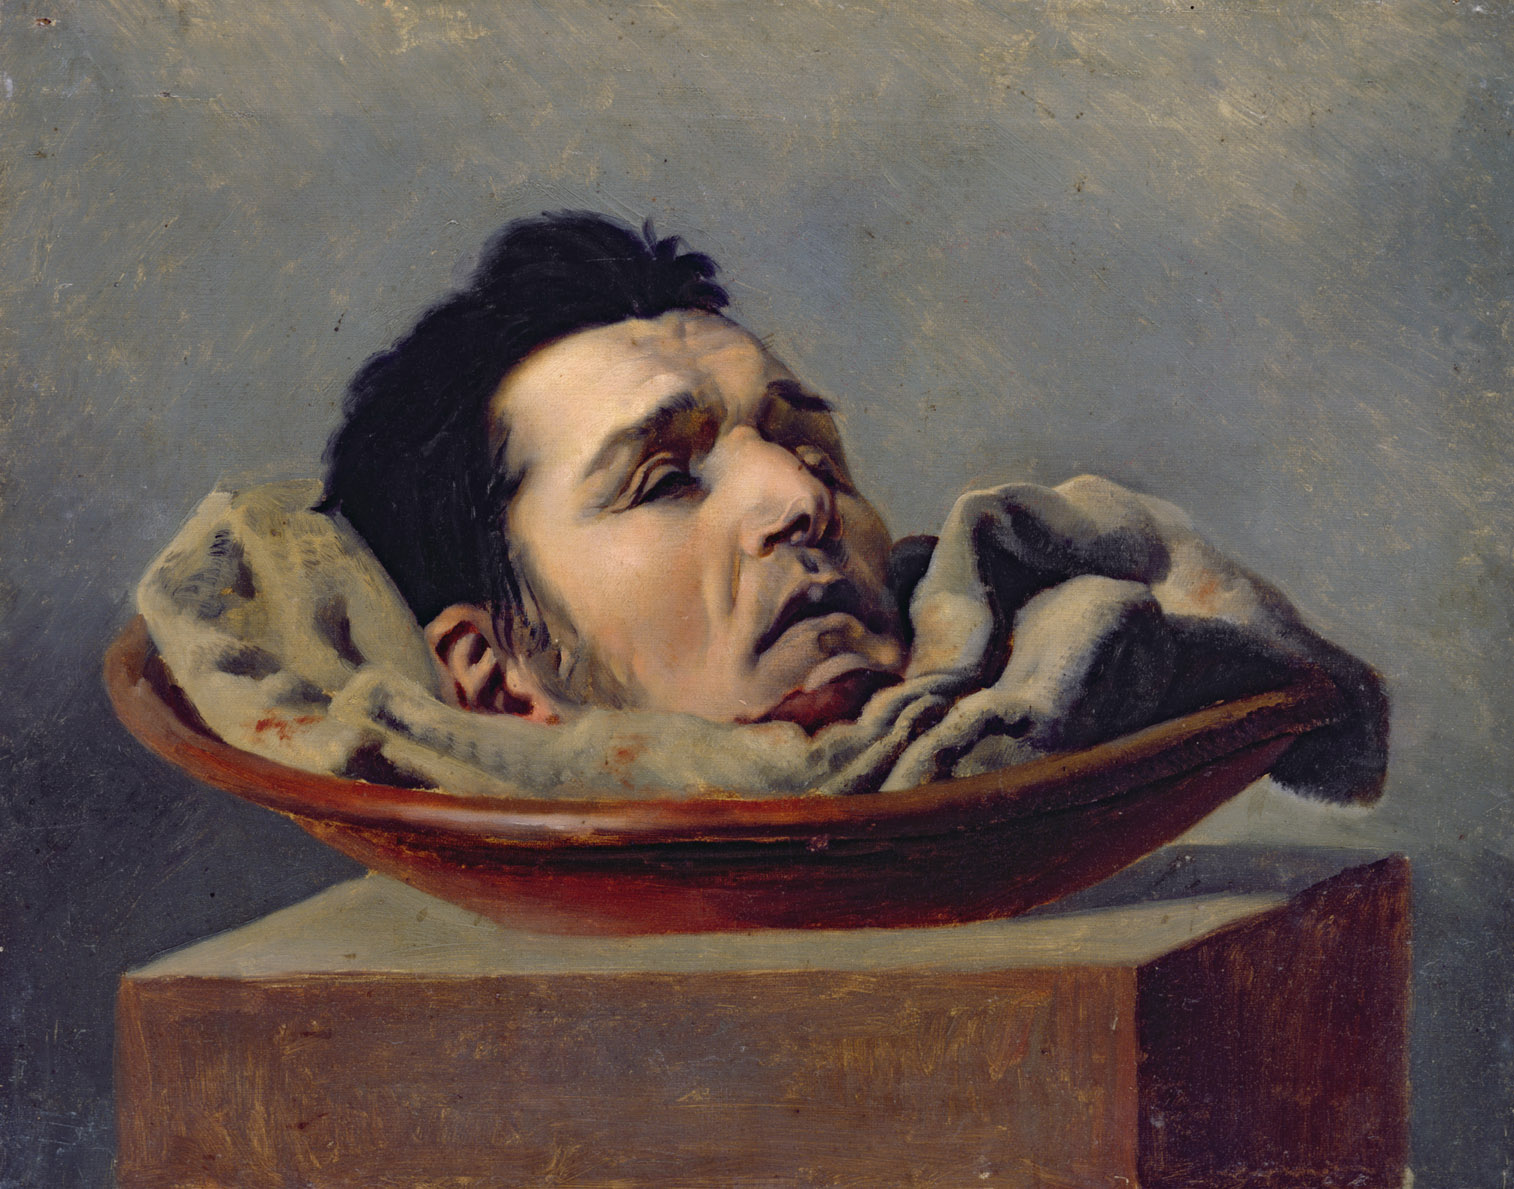 Guillotined Head of a Parricide Executed at Puy in 1825, by François Gabriel de Becdelièvre, c. 1825.